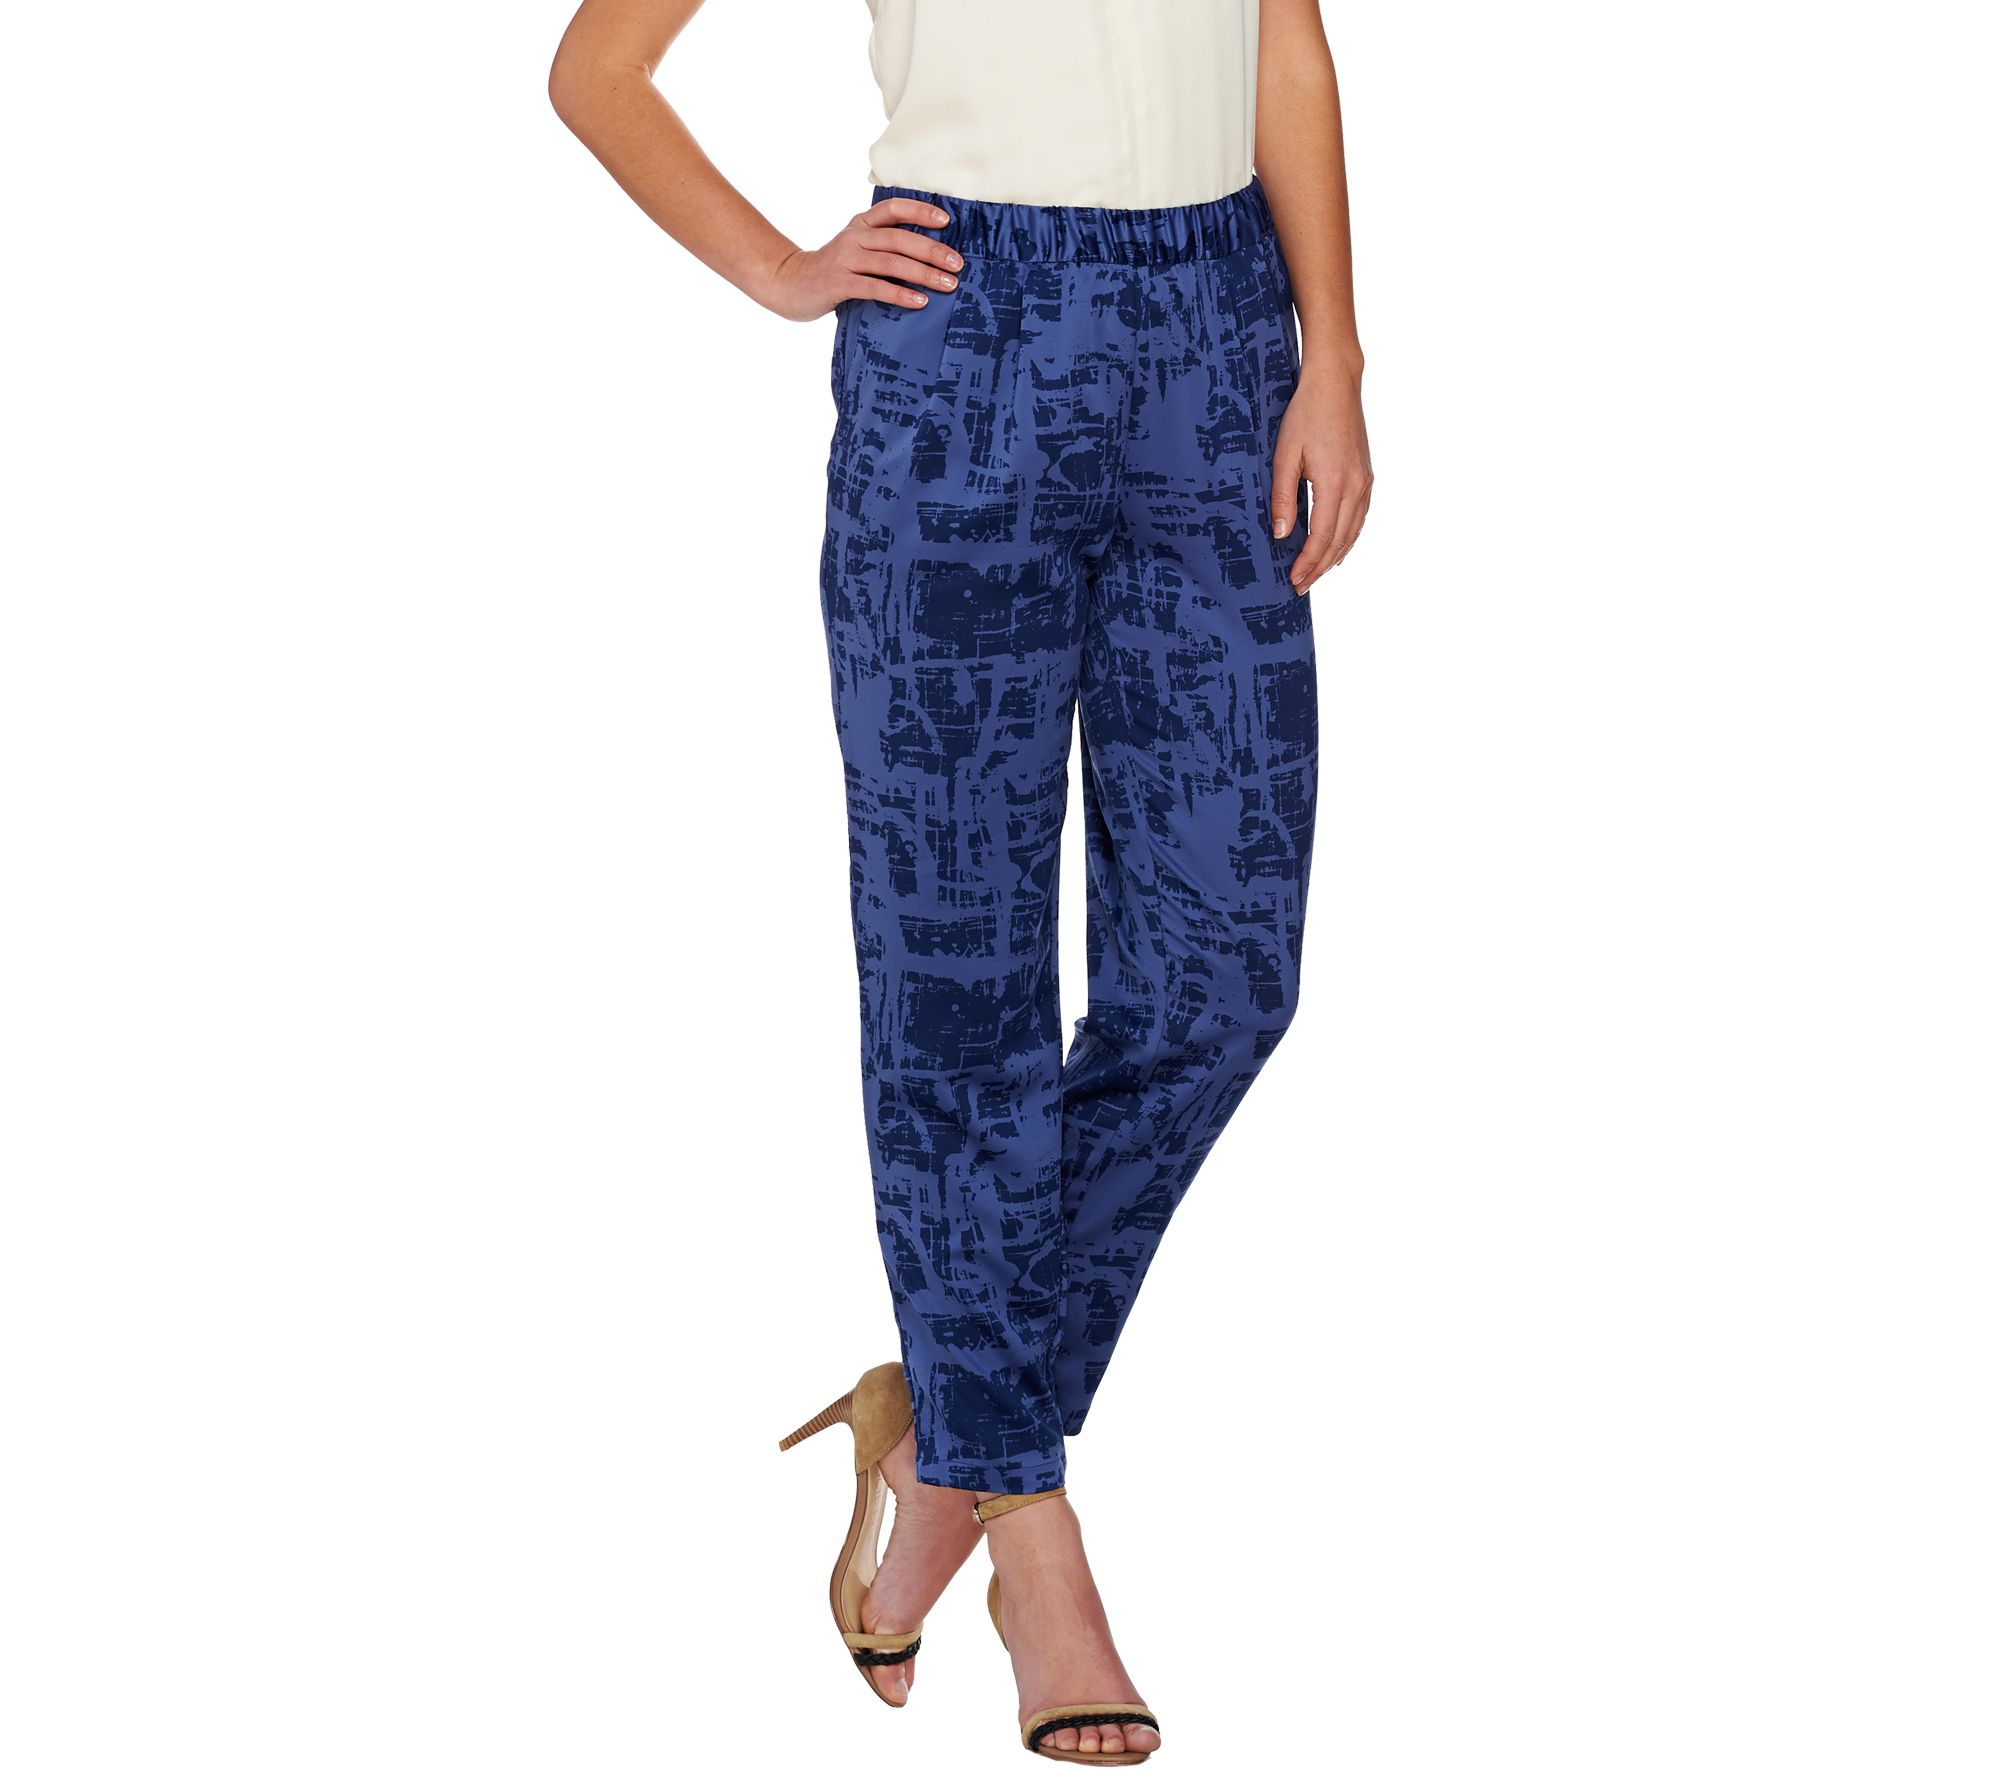 H by Halston Etch Print Woven Pull-On Ankle Pants